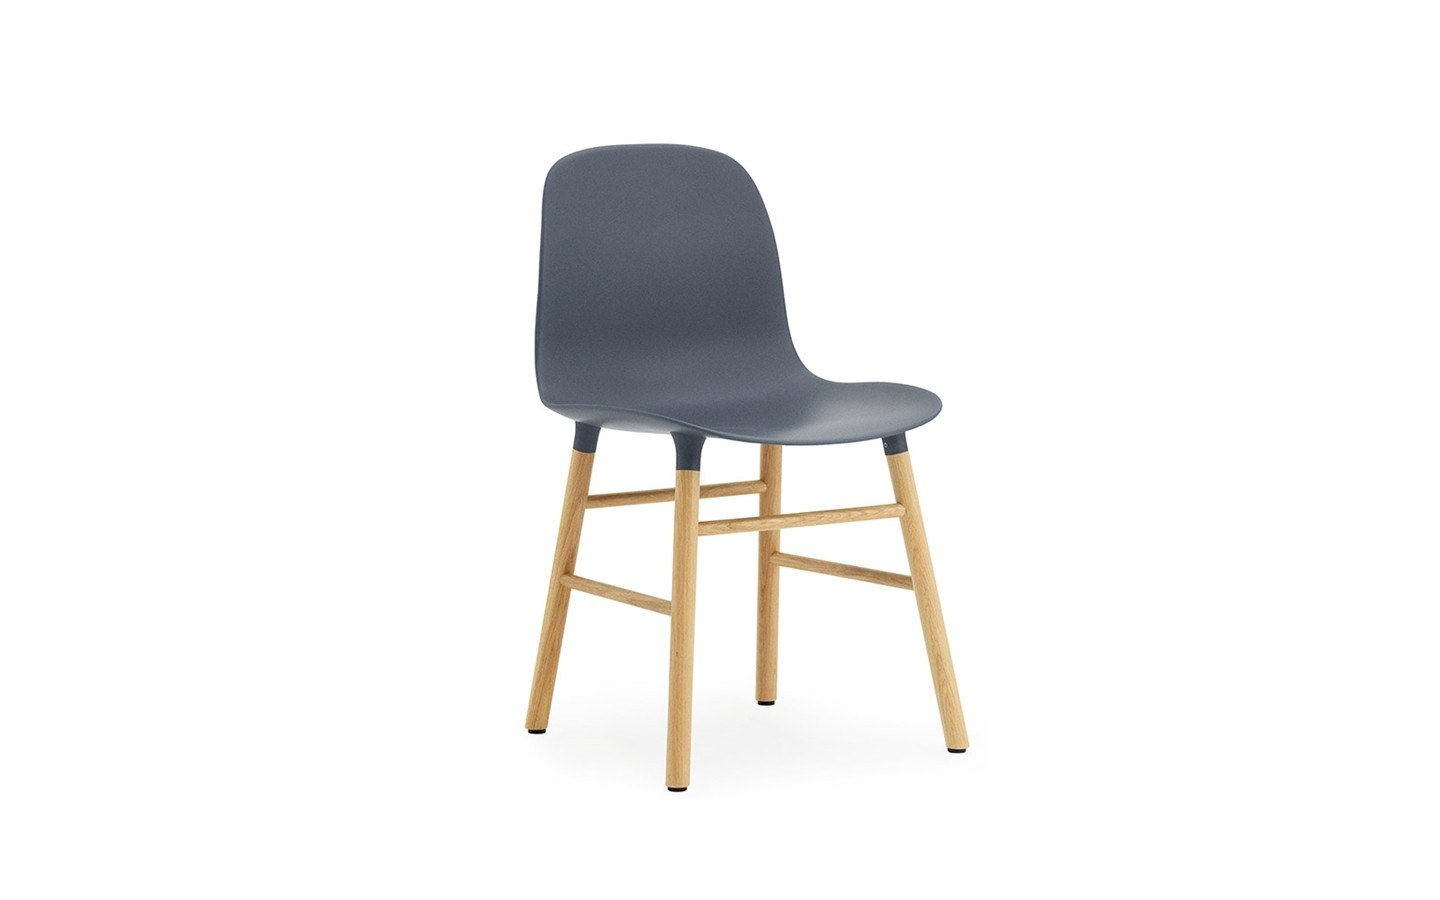 NORMANN COPENHAGEN FORM CHAIR-STEEL BASE - Eclectic Cool  - 2